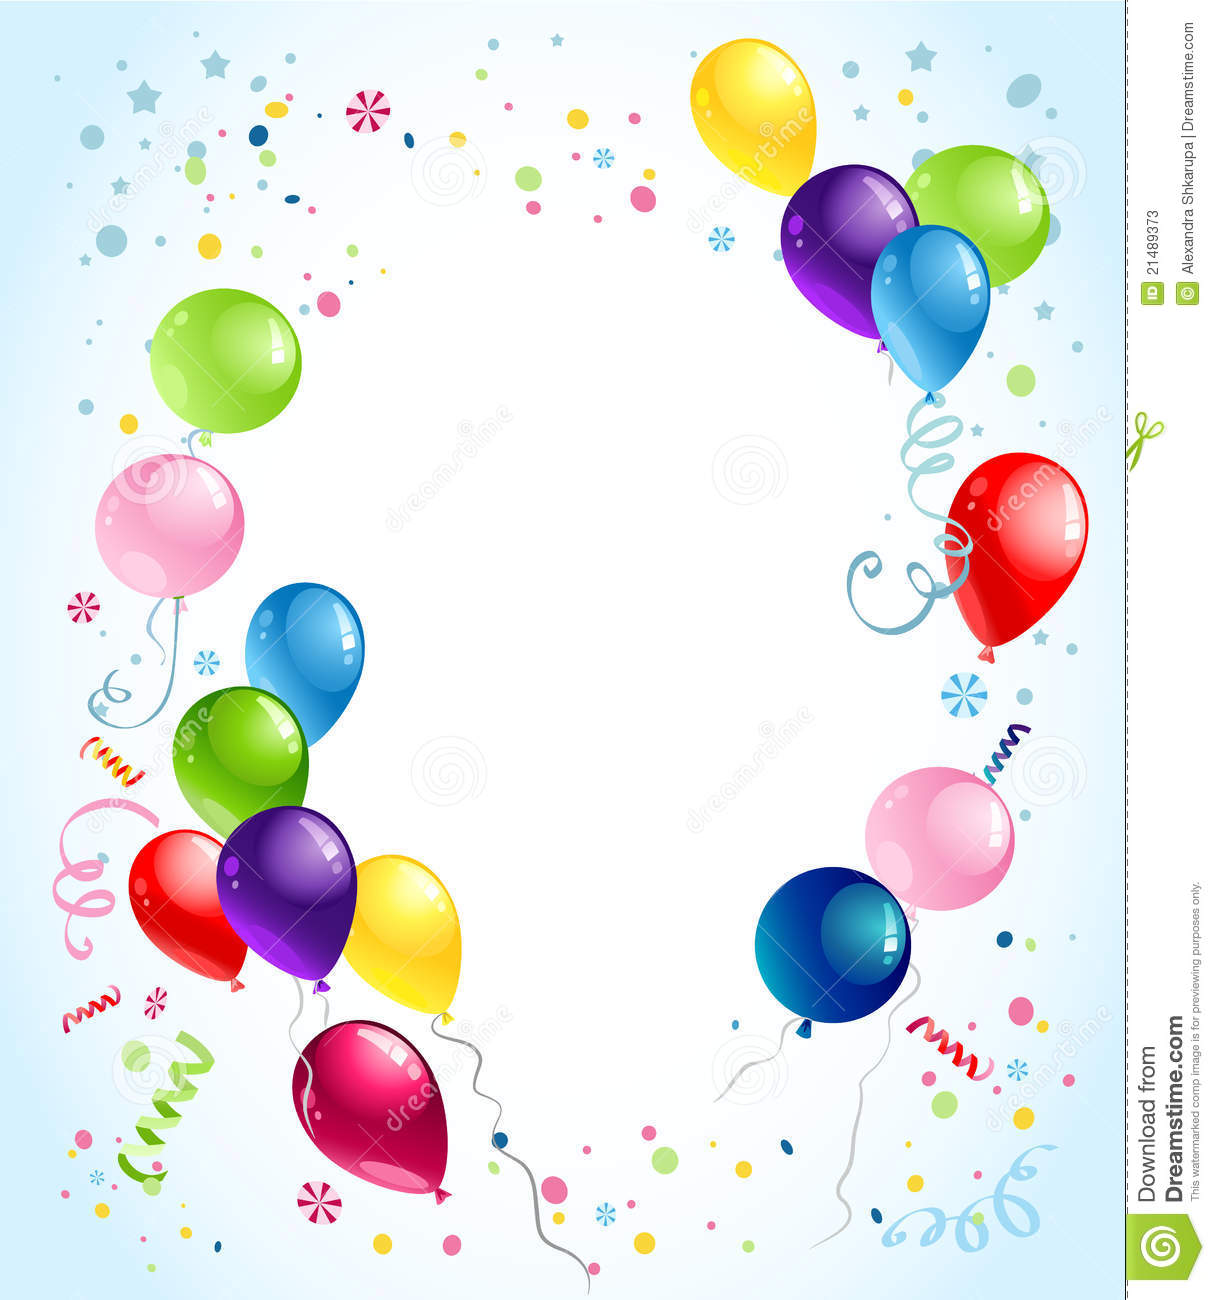 birthday background clipart ; balloon-background-clipart-8